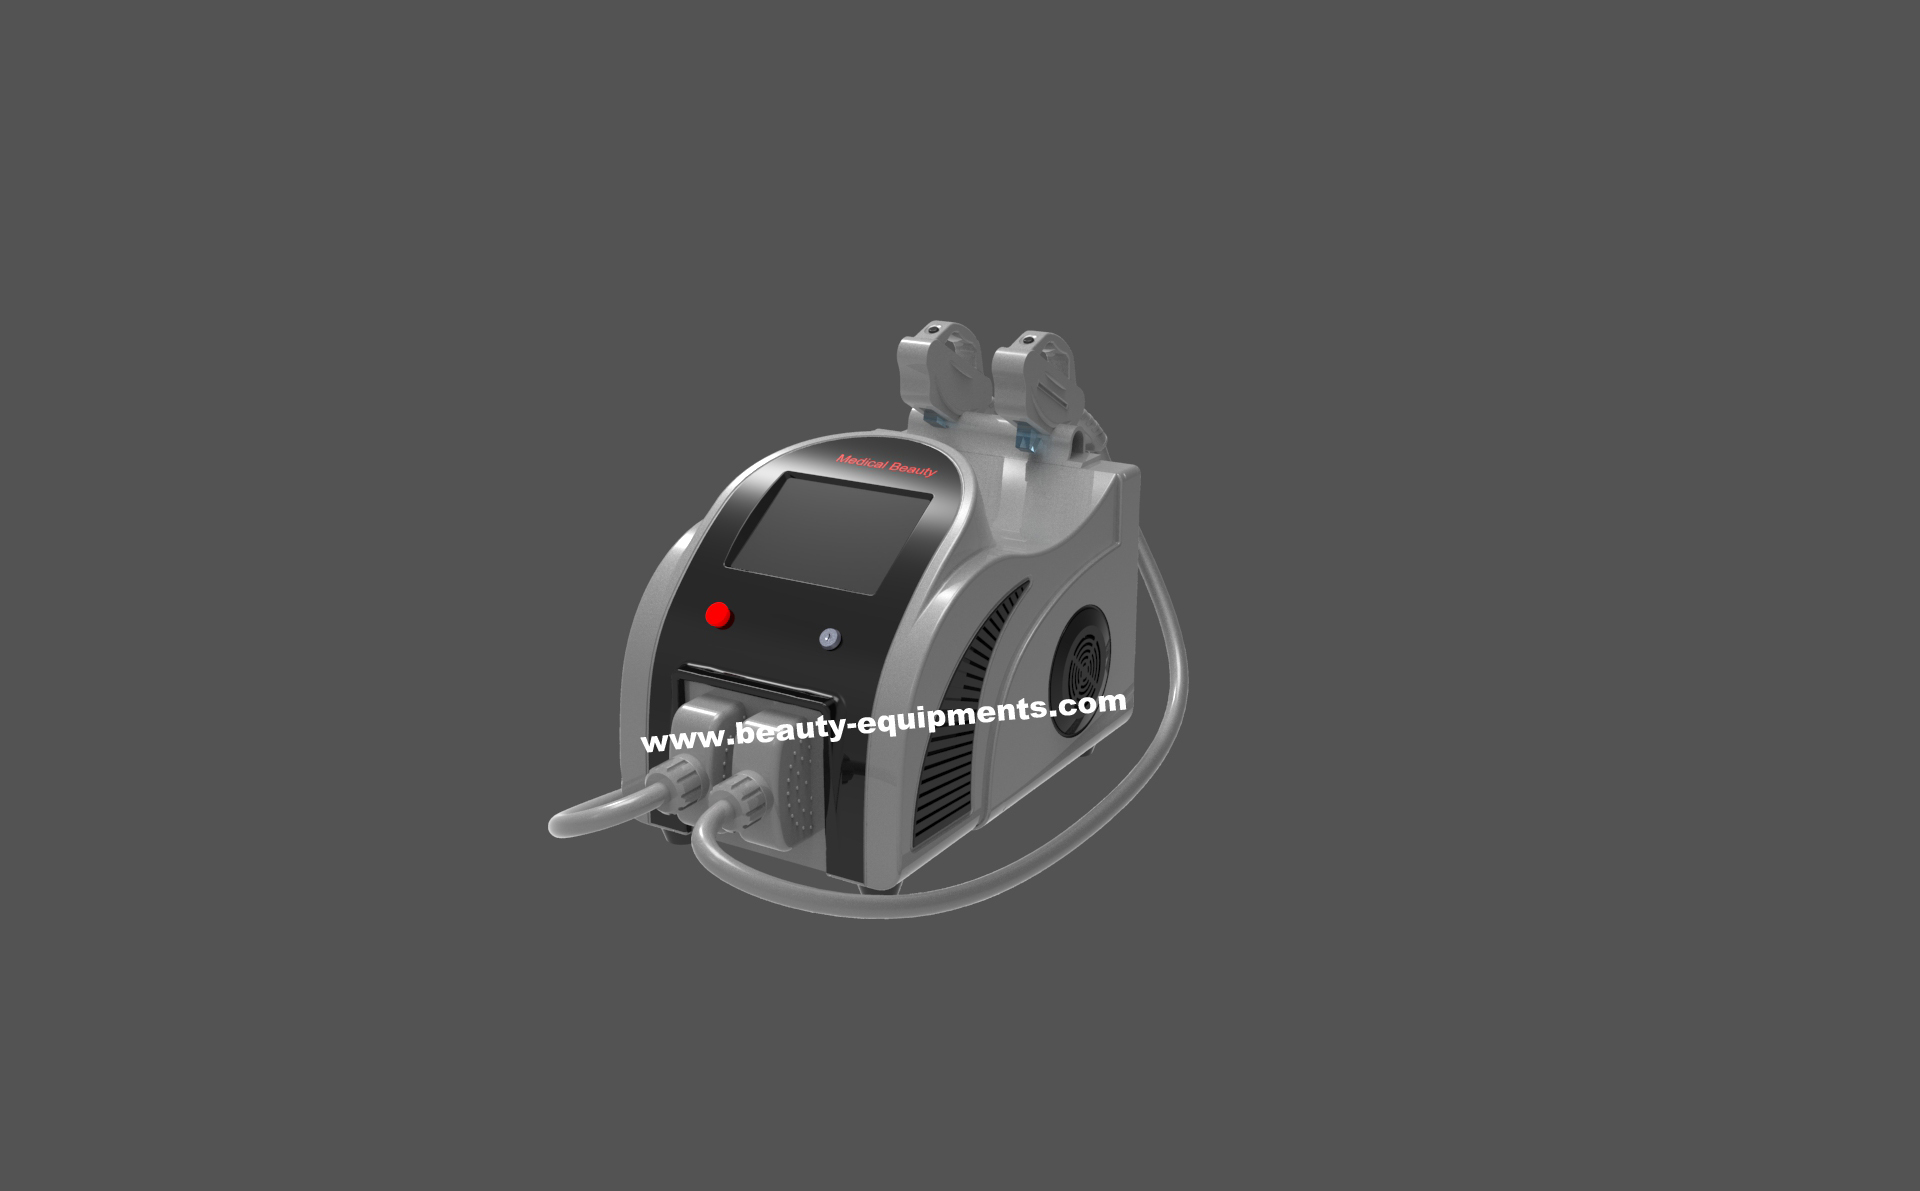 640nm filter for Ipl Hair Removal Machines With Two Handles